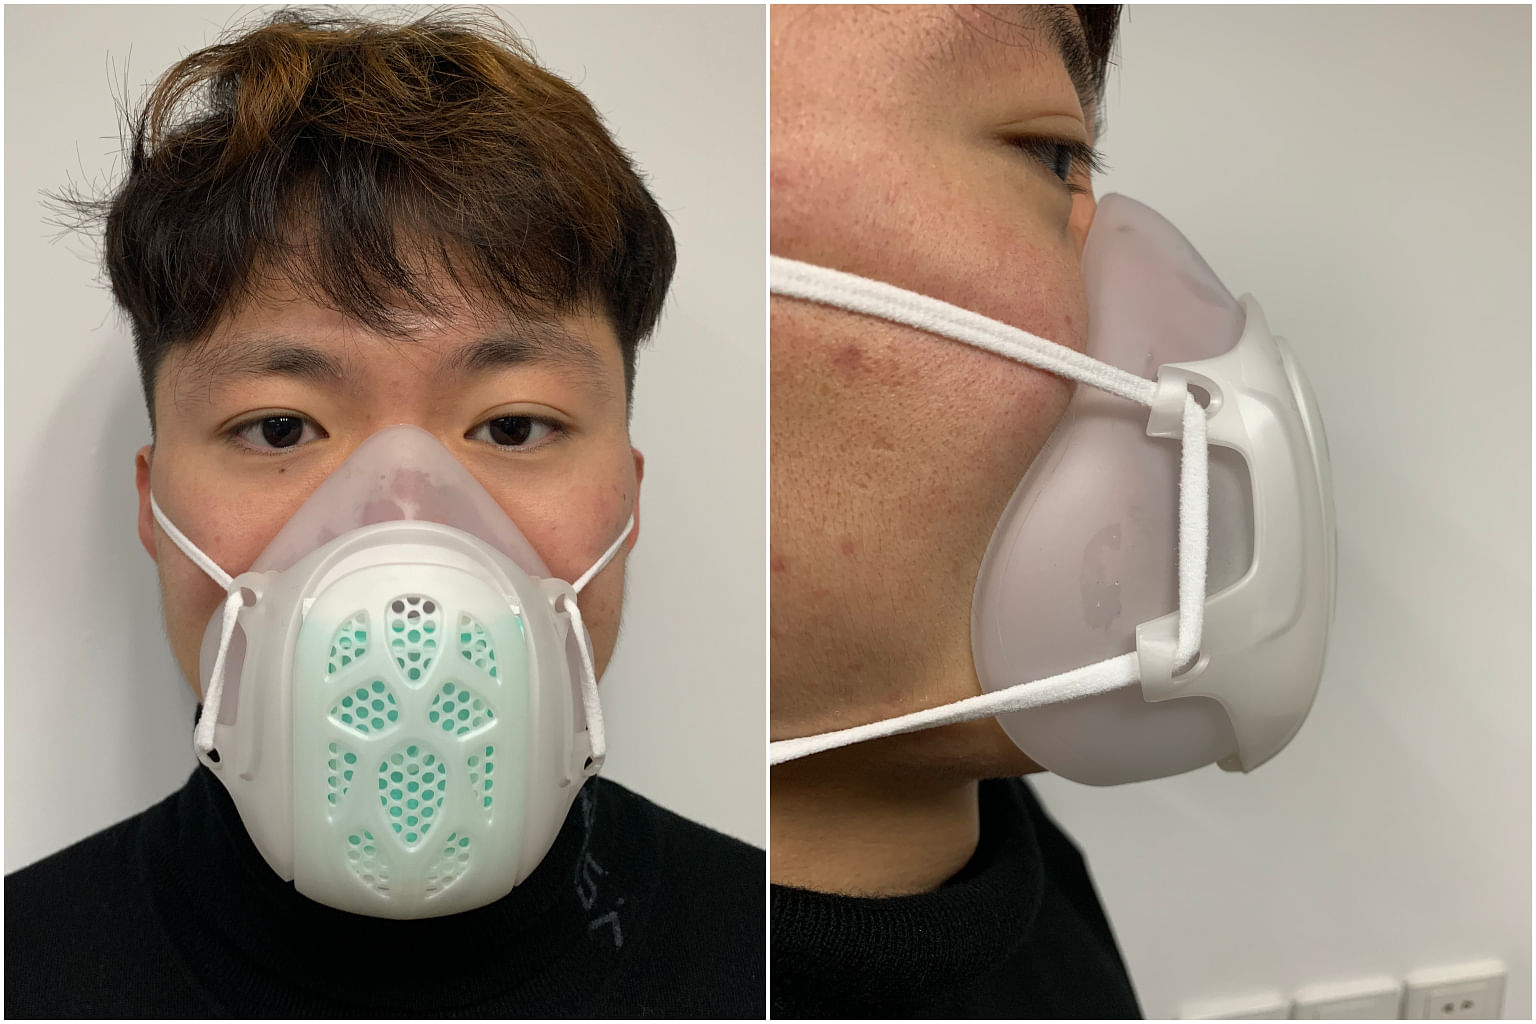 Coronavirus Local Company Invents New Mask To Tackle Global Shortage 1 000 Being Shipped Here For Sale Health News Top Stories The Straits Times